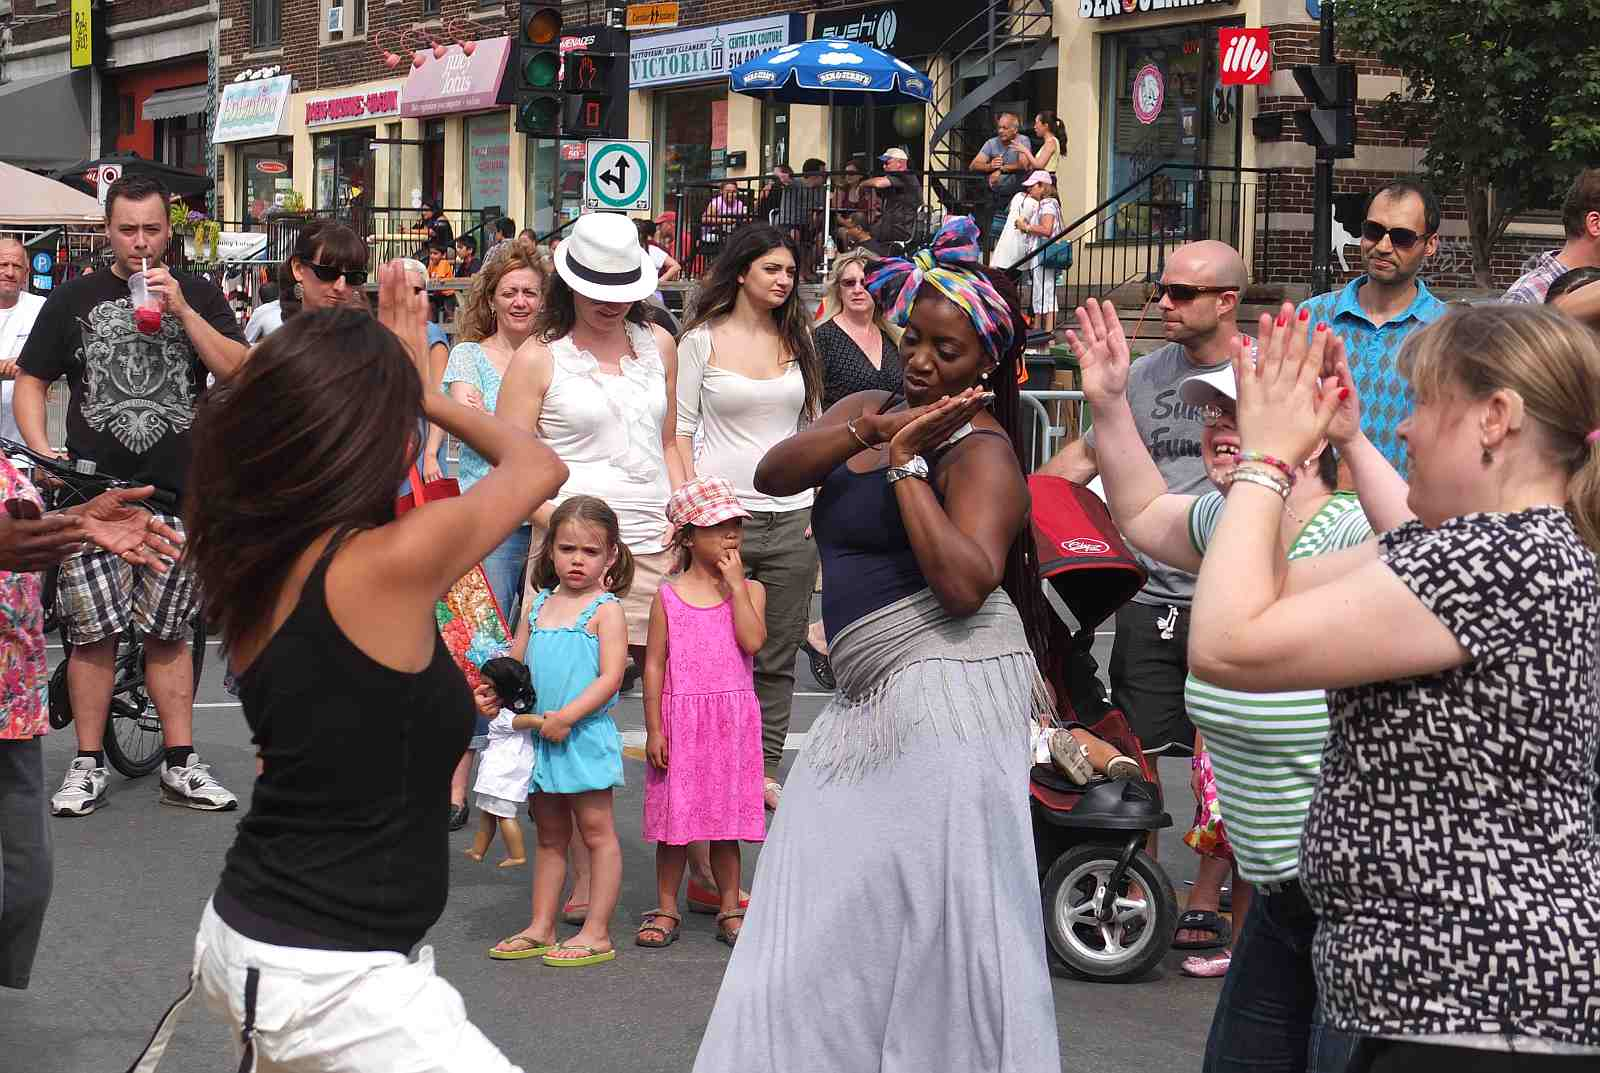 People dancing in the streets of Montreal over Labour Day weekend.